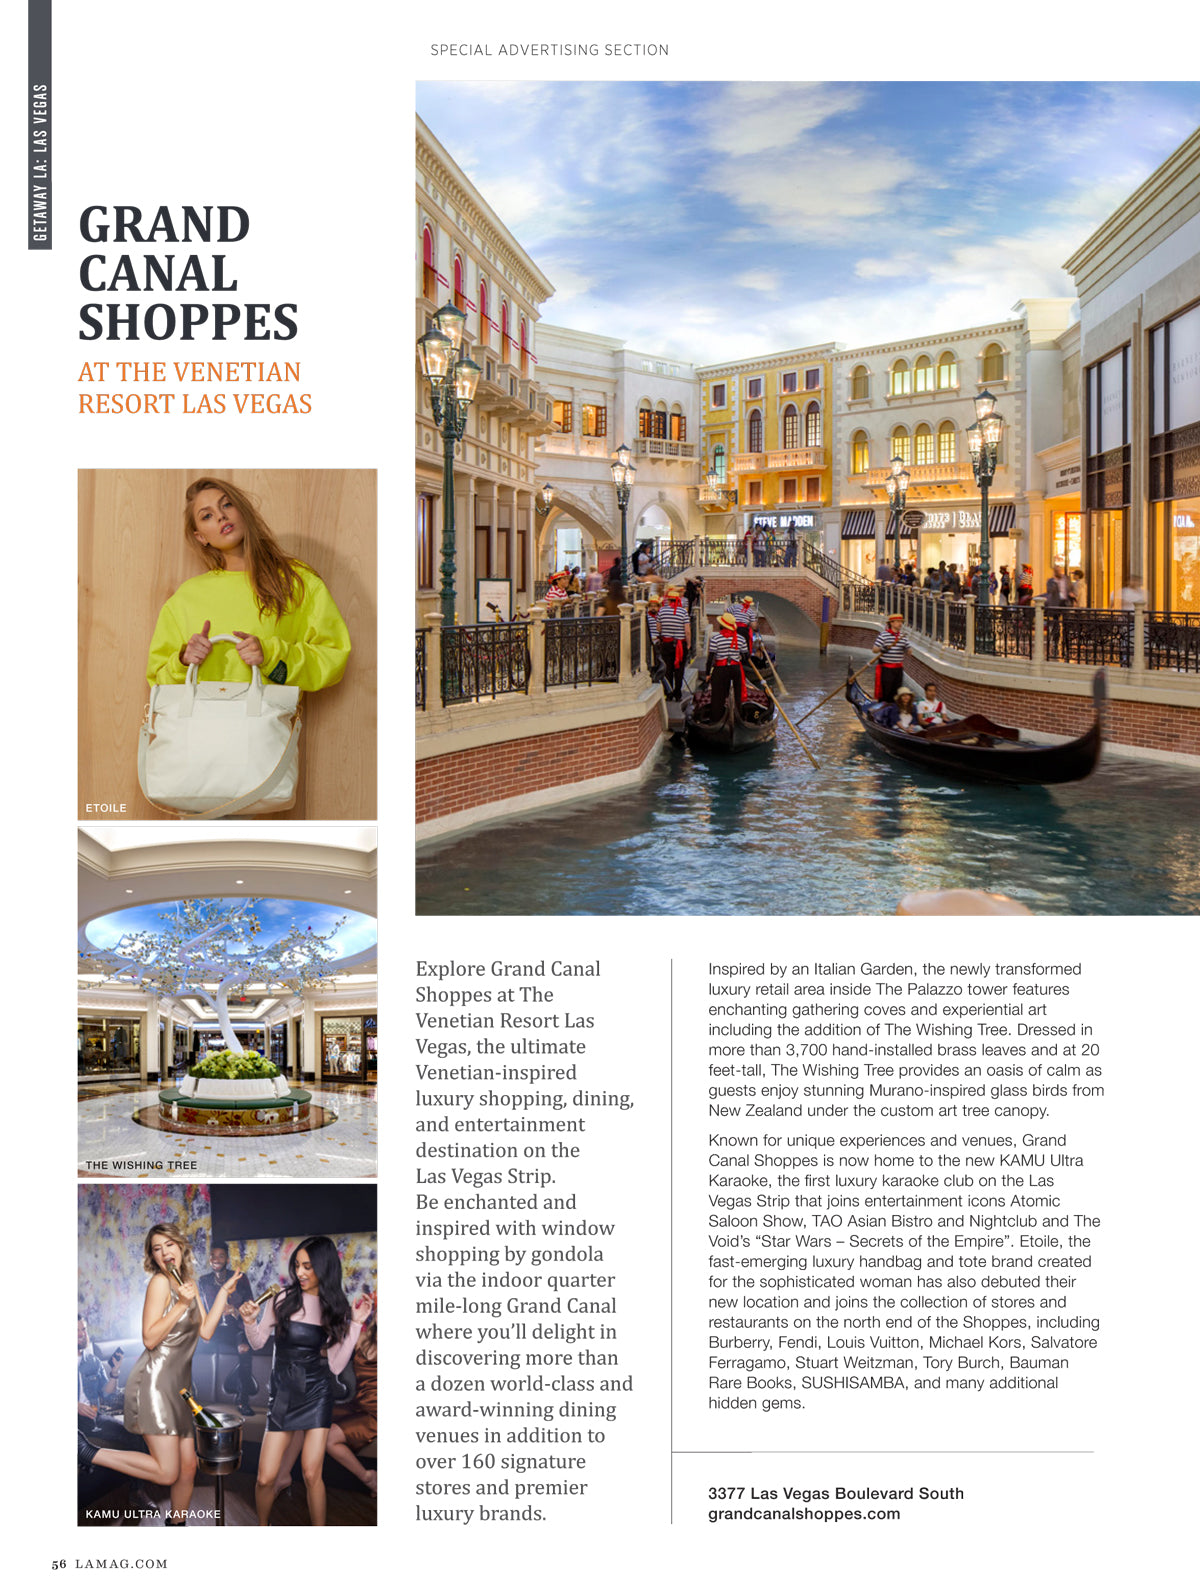 LA Magazine -Grand Canal Shoppes features etoile